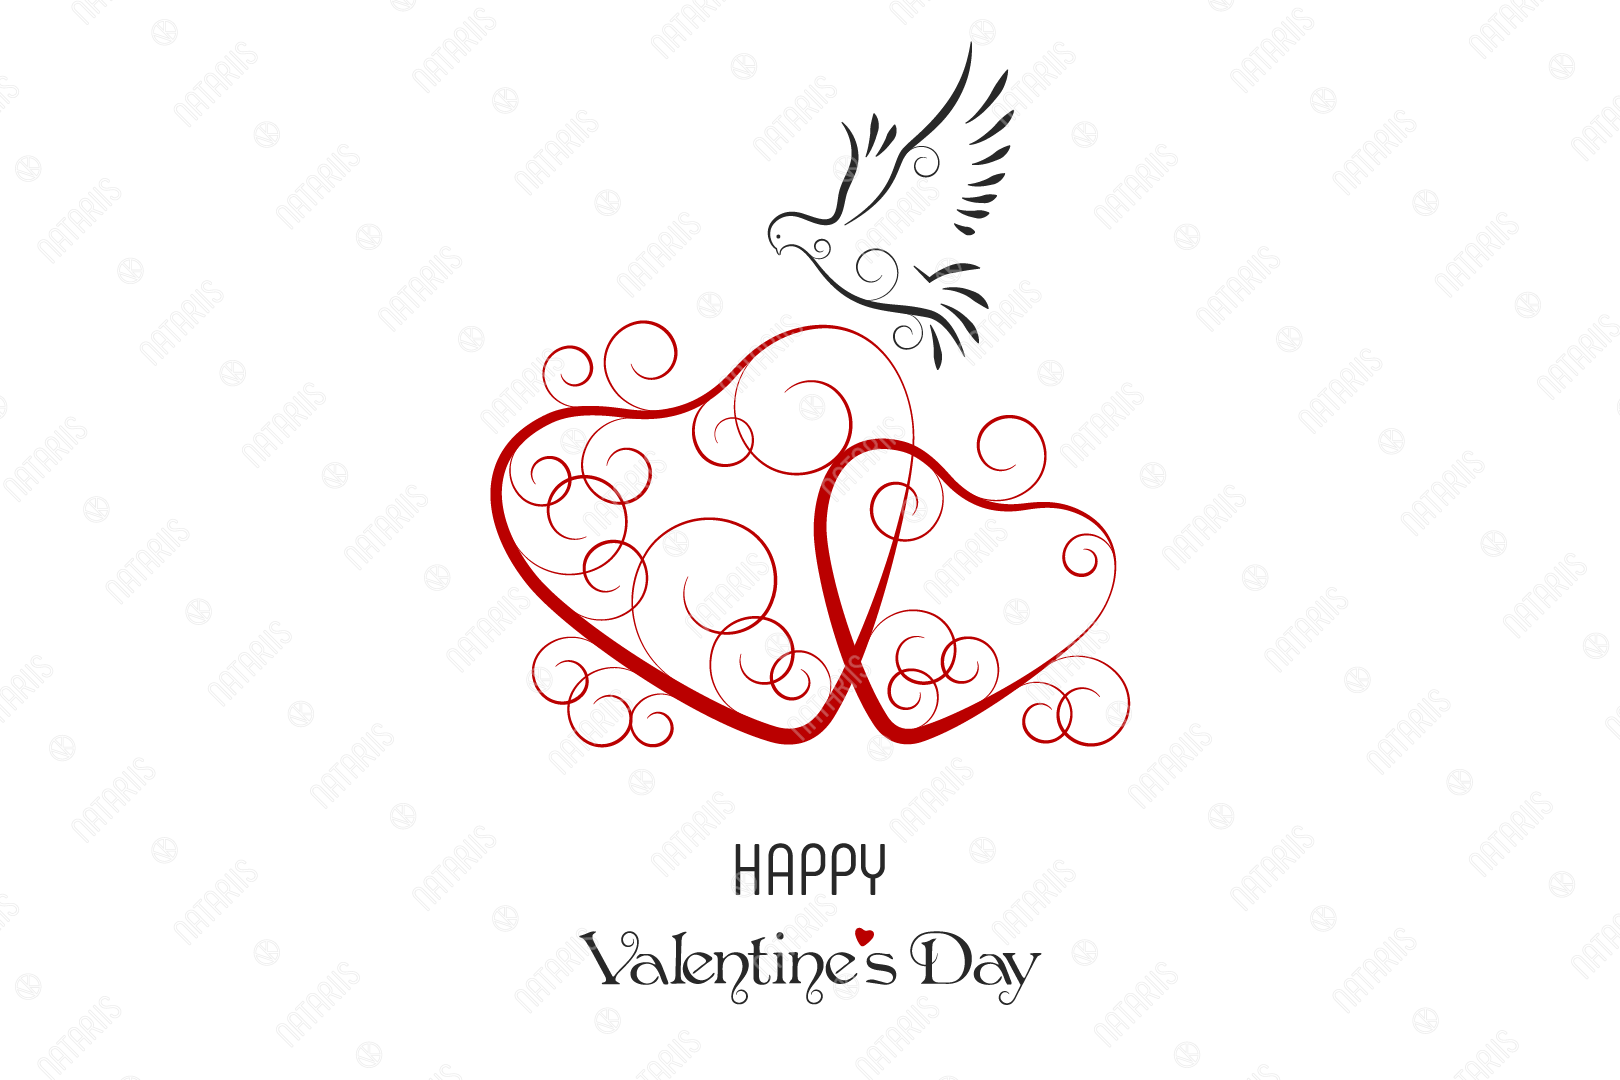 Download Free Happy Valentine S Day Greeting Card Graphic By Natariis Studio for Cricut Explore, Silhouette and other cutting machines.